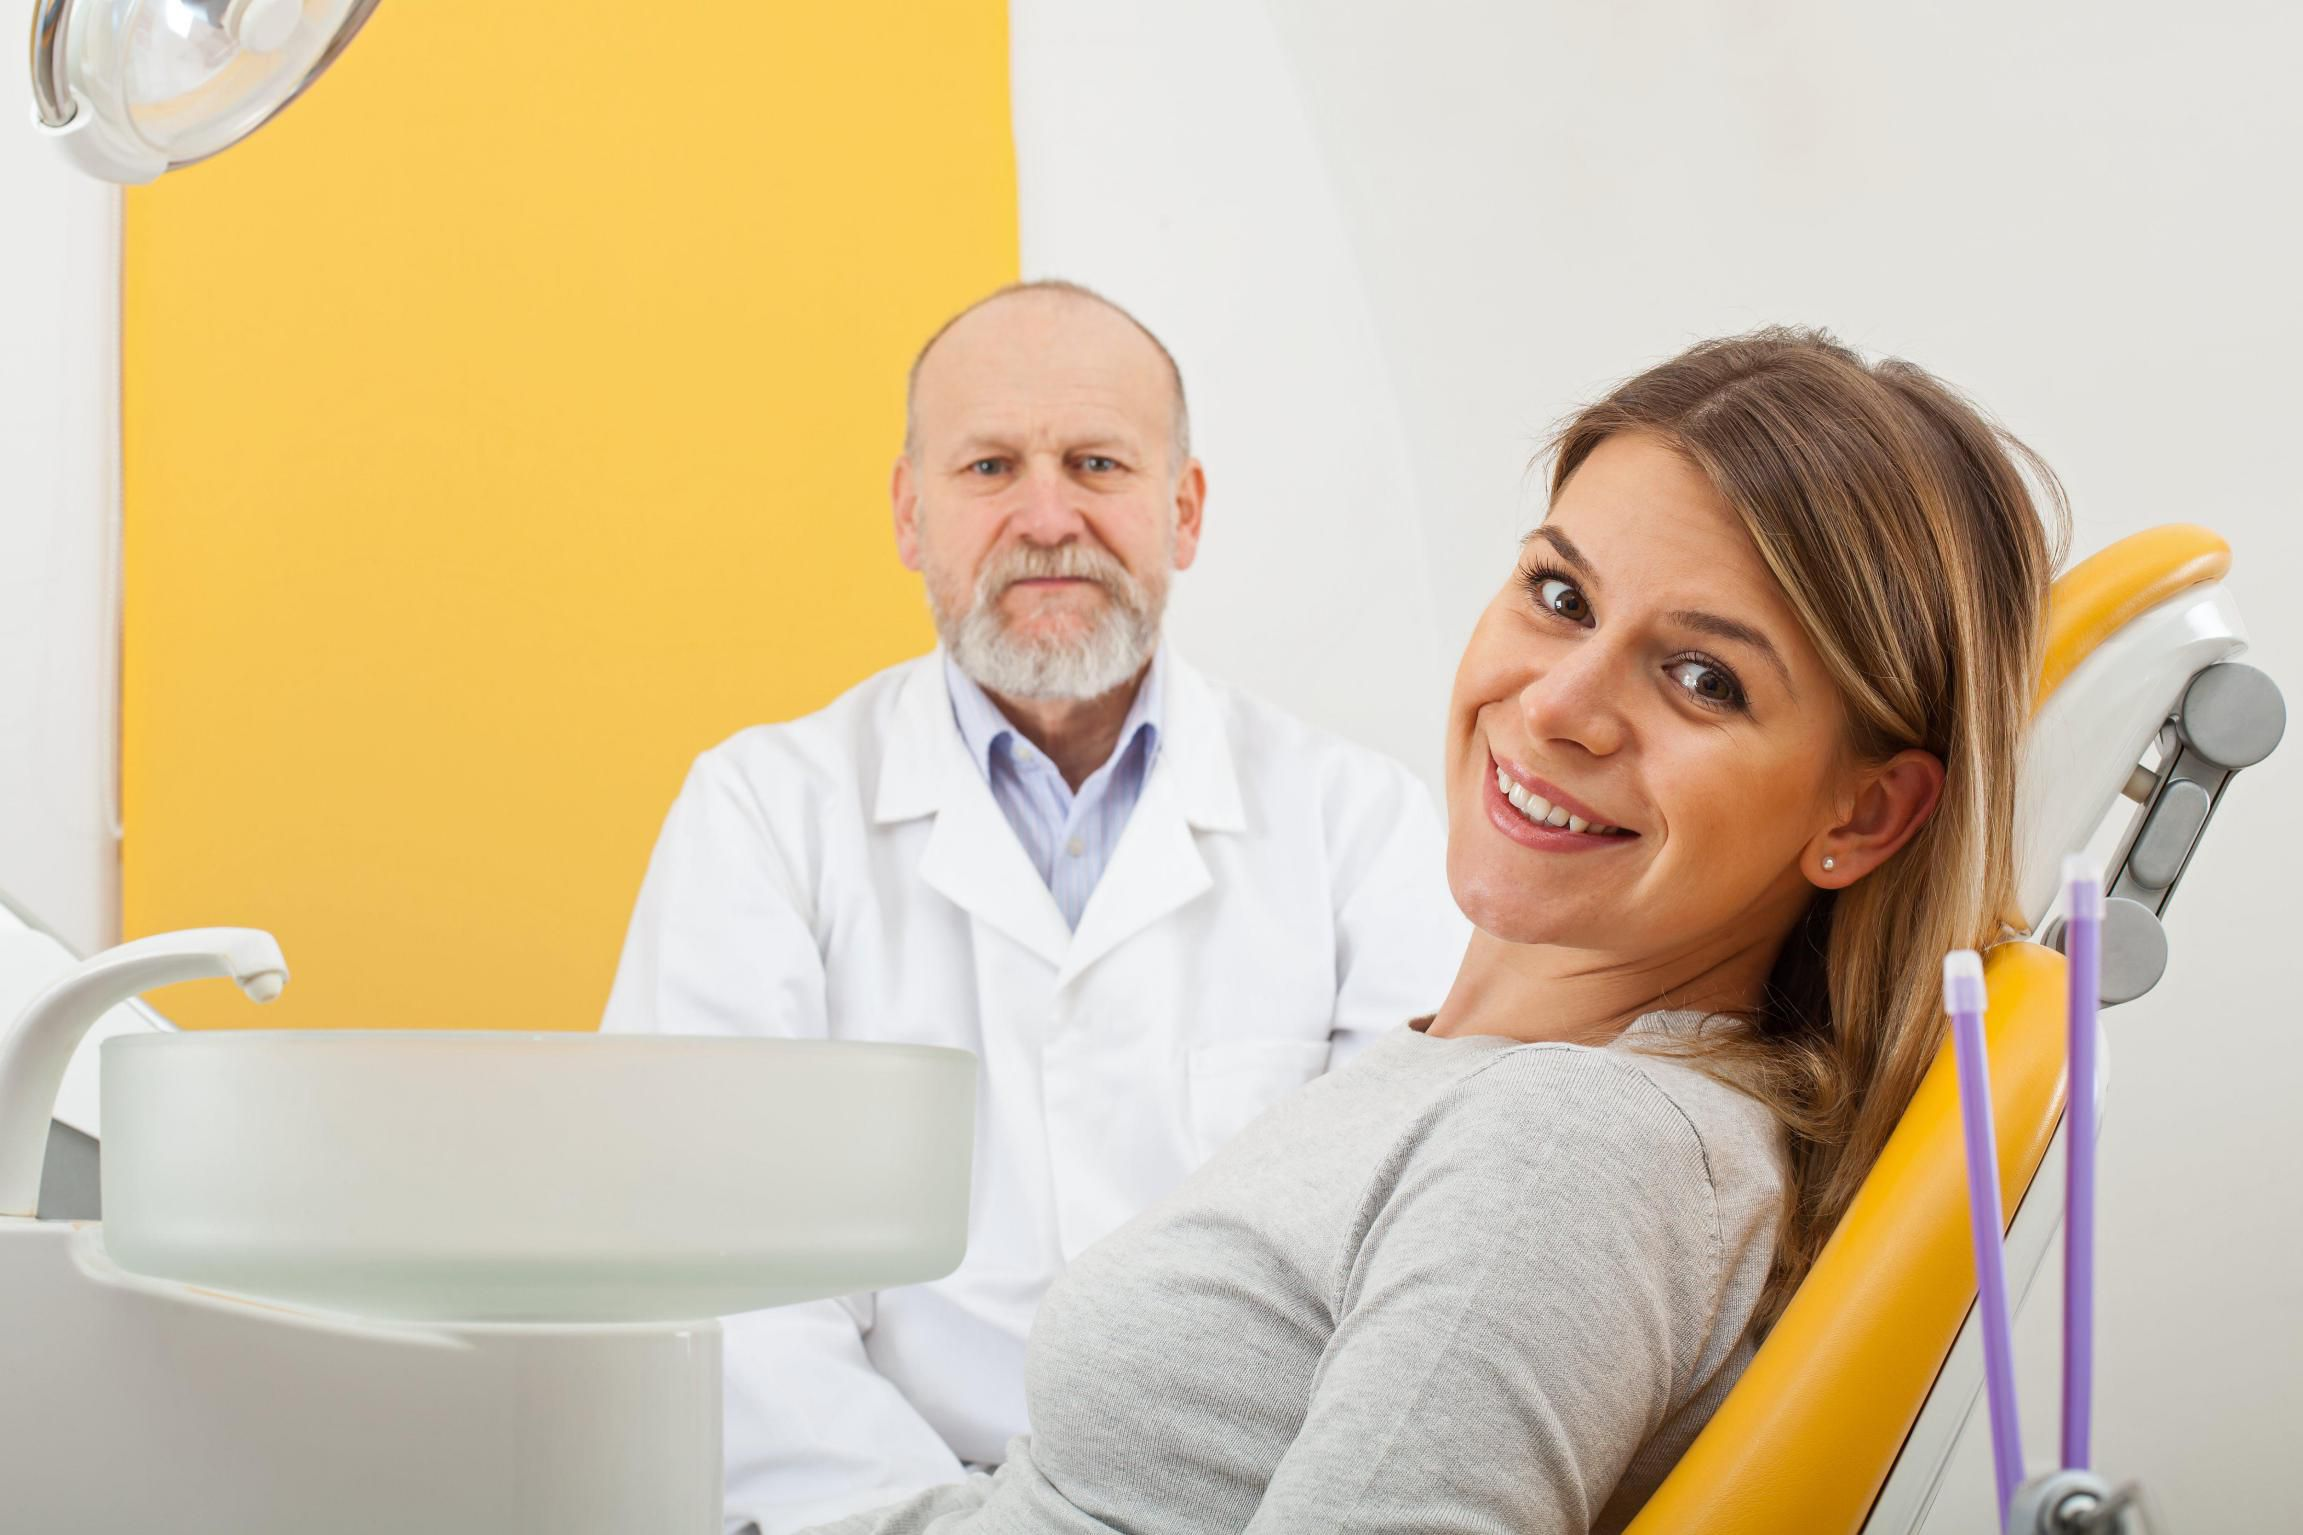 dental implants have the power to not only change your smile but restore your confidence